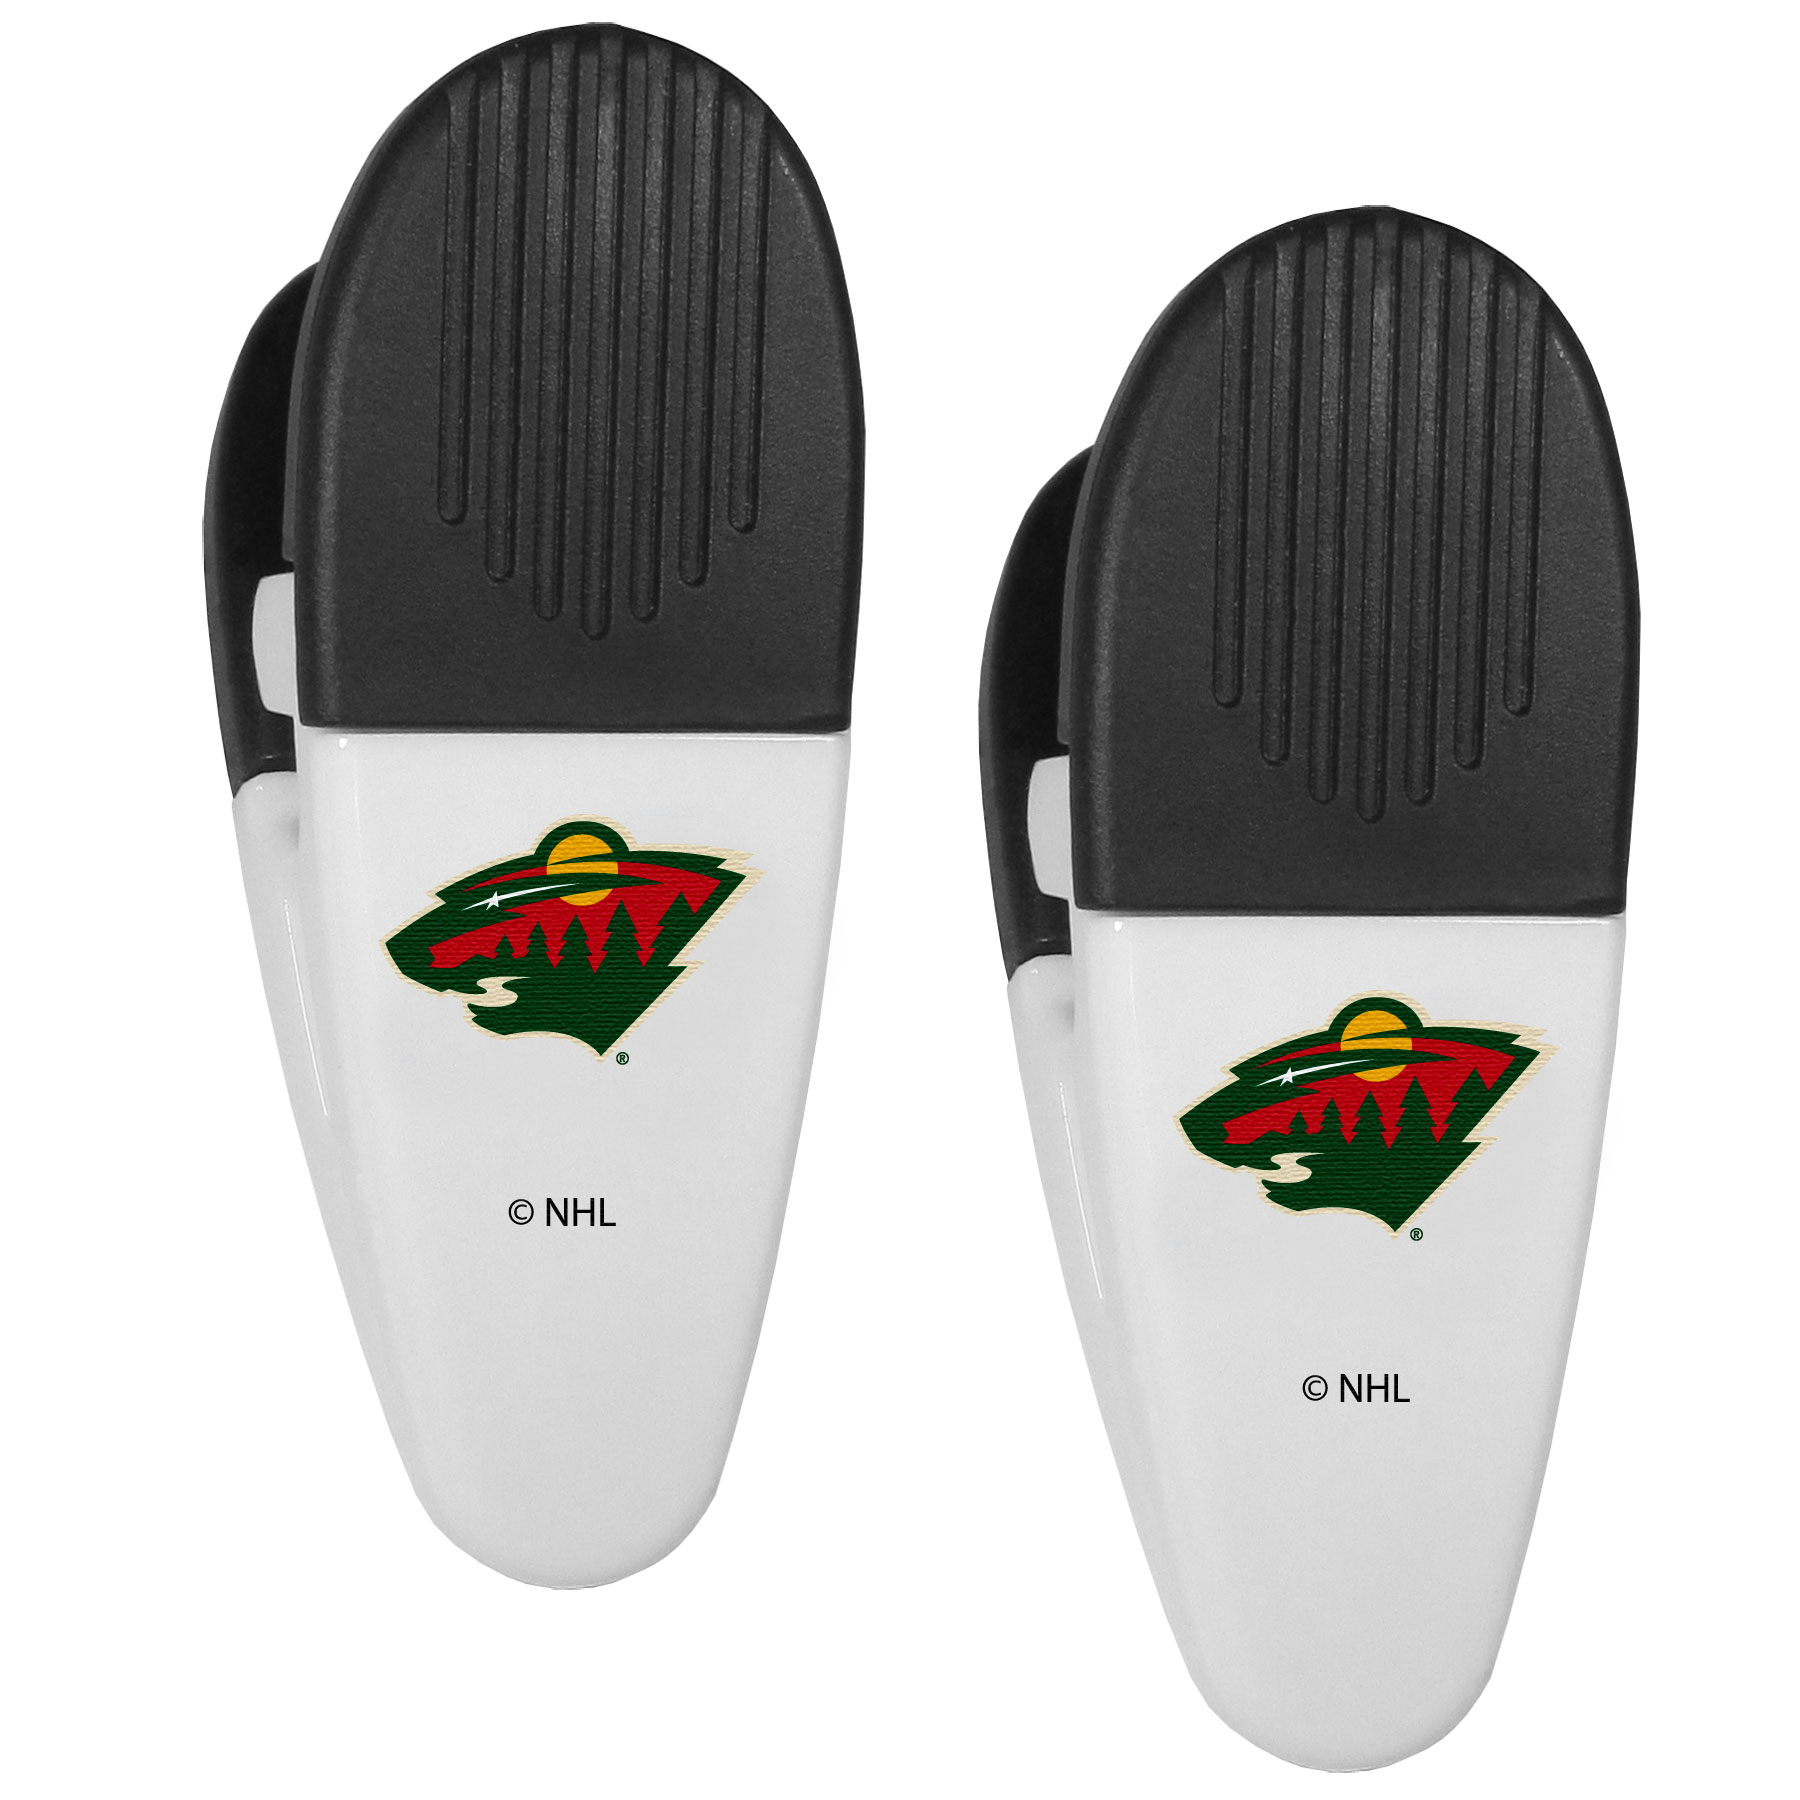 Minnesota Wild® Mini Chip Clip Magnets, 2 pk - Our Minnesota Wild® chip clip magnets feature a crisp team logo on the front of the clip. The clip is perfect for sealing chips for freshness and with the powerful magnet on the back it can be used to attach notes to the fridge or hanging your child's artwork. Set of 2 magnet clips, each clip is 3.5 inches tall and 1.25 inch wide.